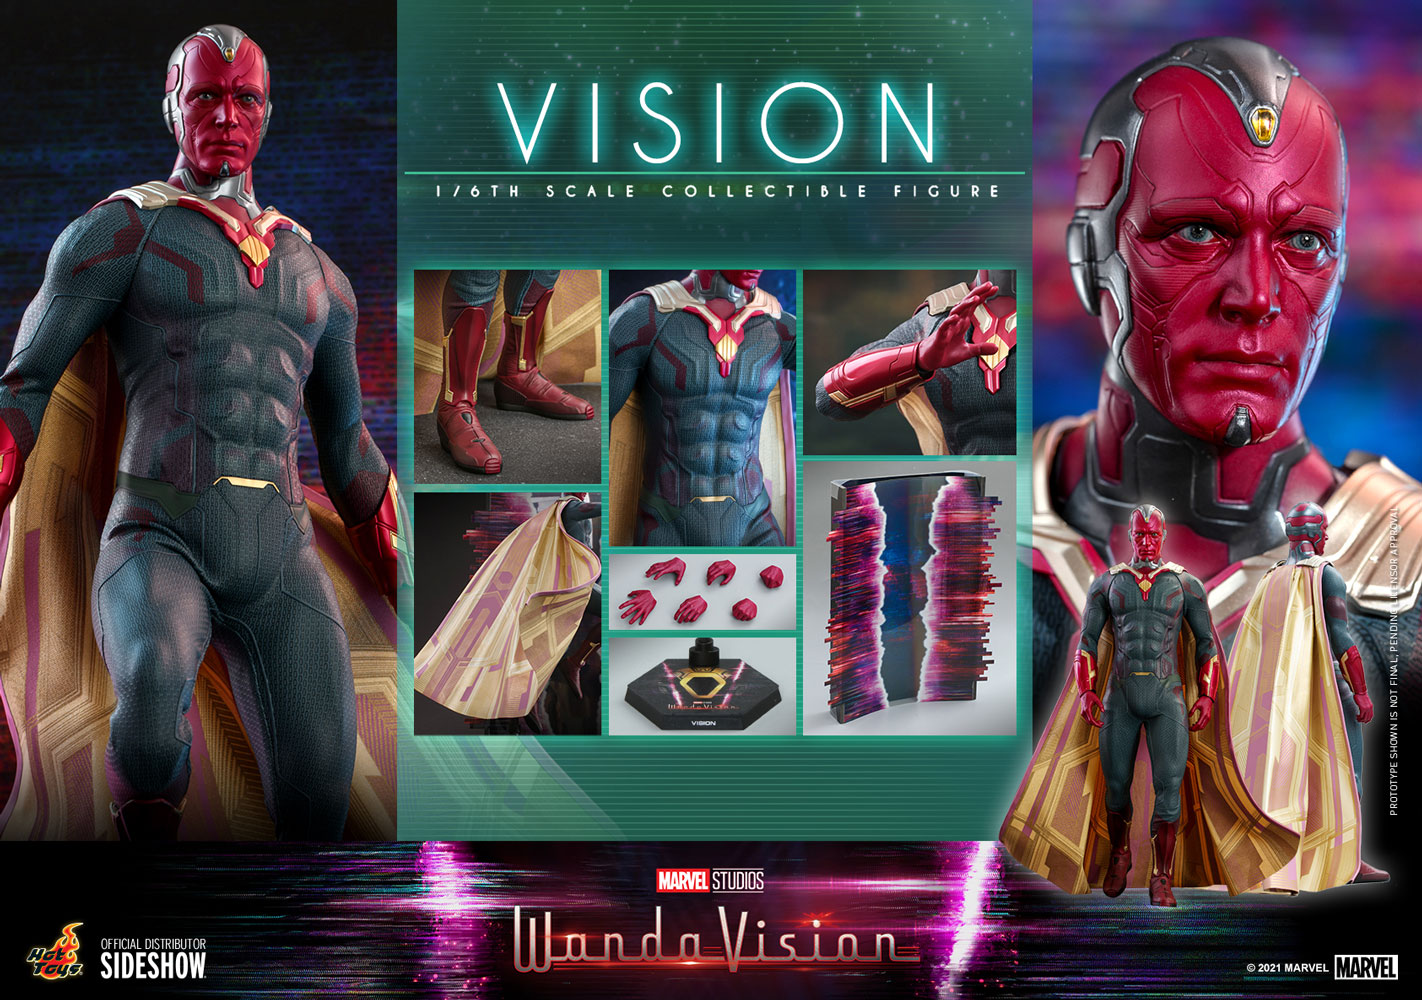 vision-sixth-scale-figure-by-hot-toys_marvel_gallery_6046e1258e8cc.jpg